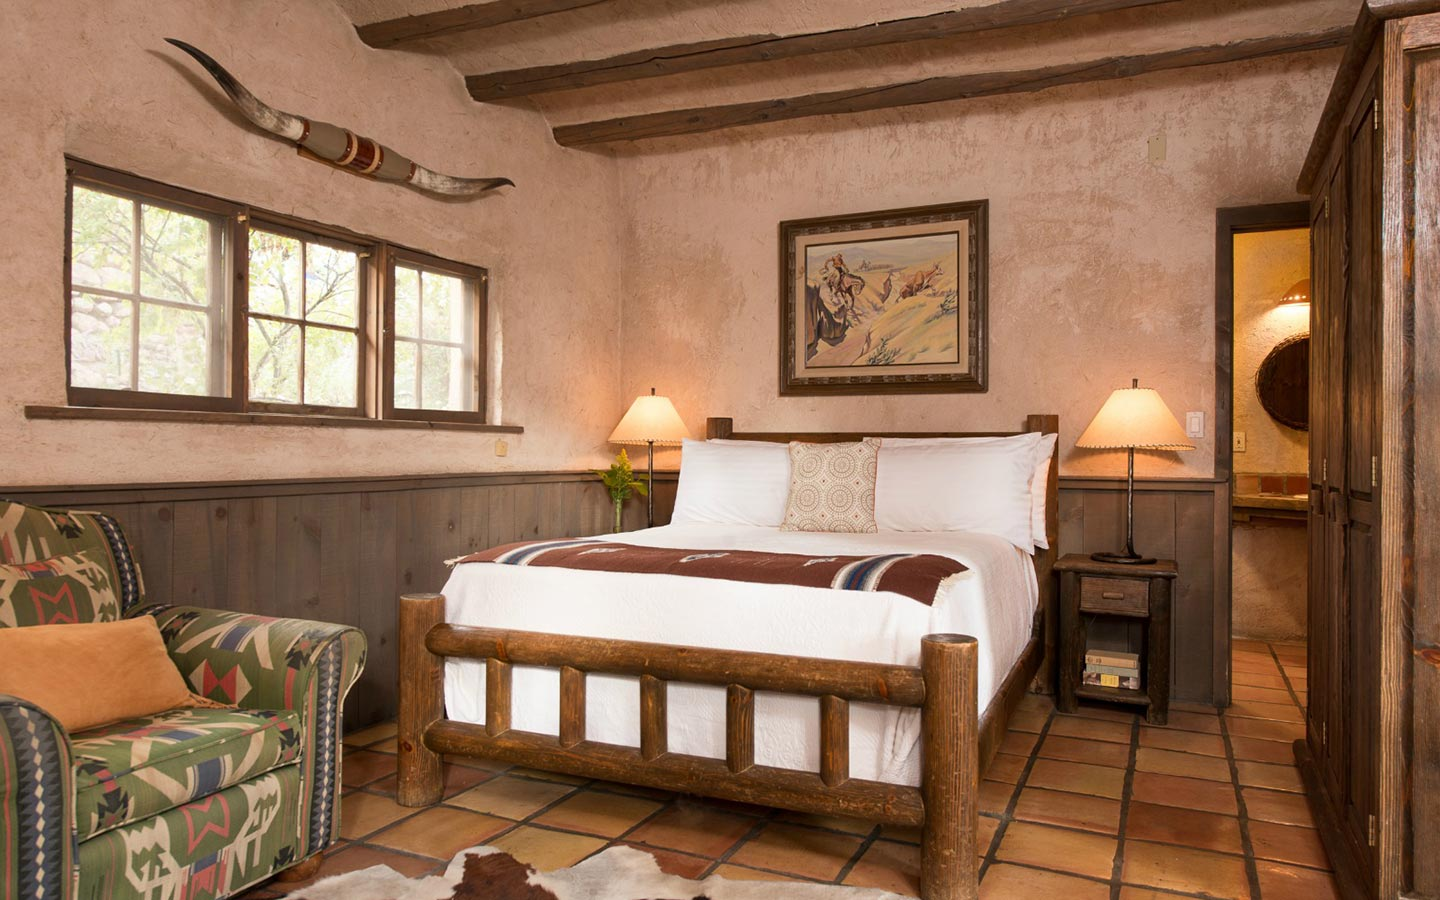 Santa Fe Accommodations - Willa Cather Room